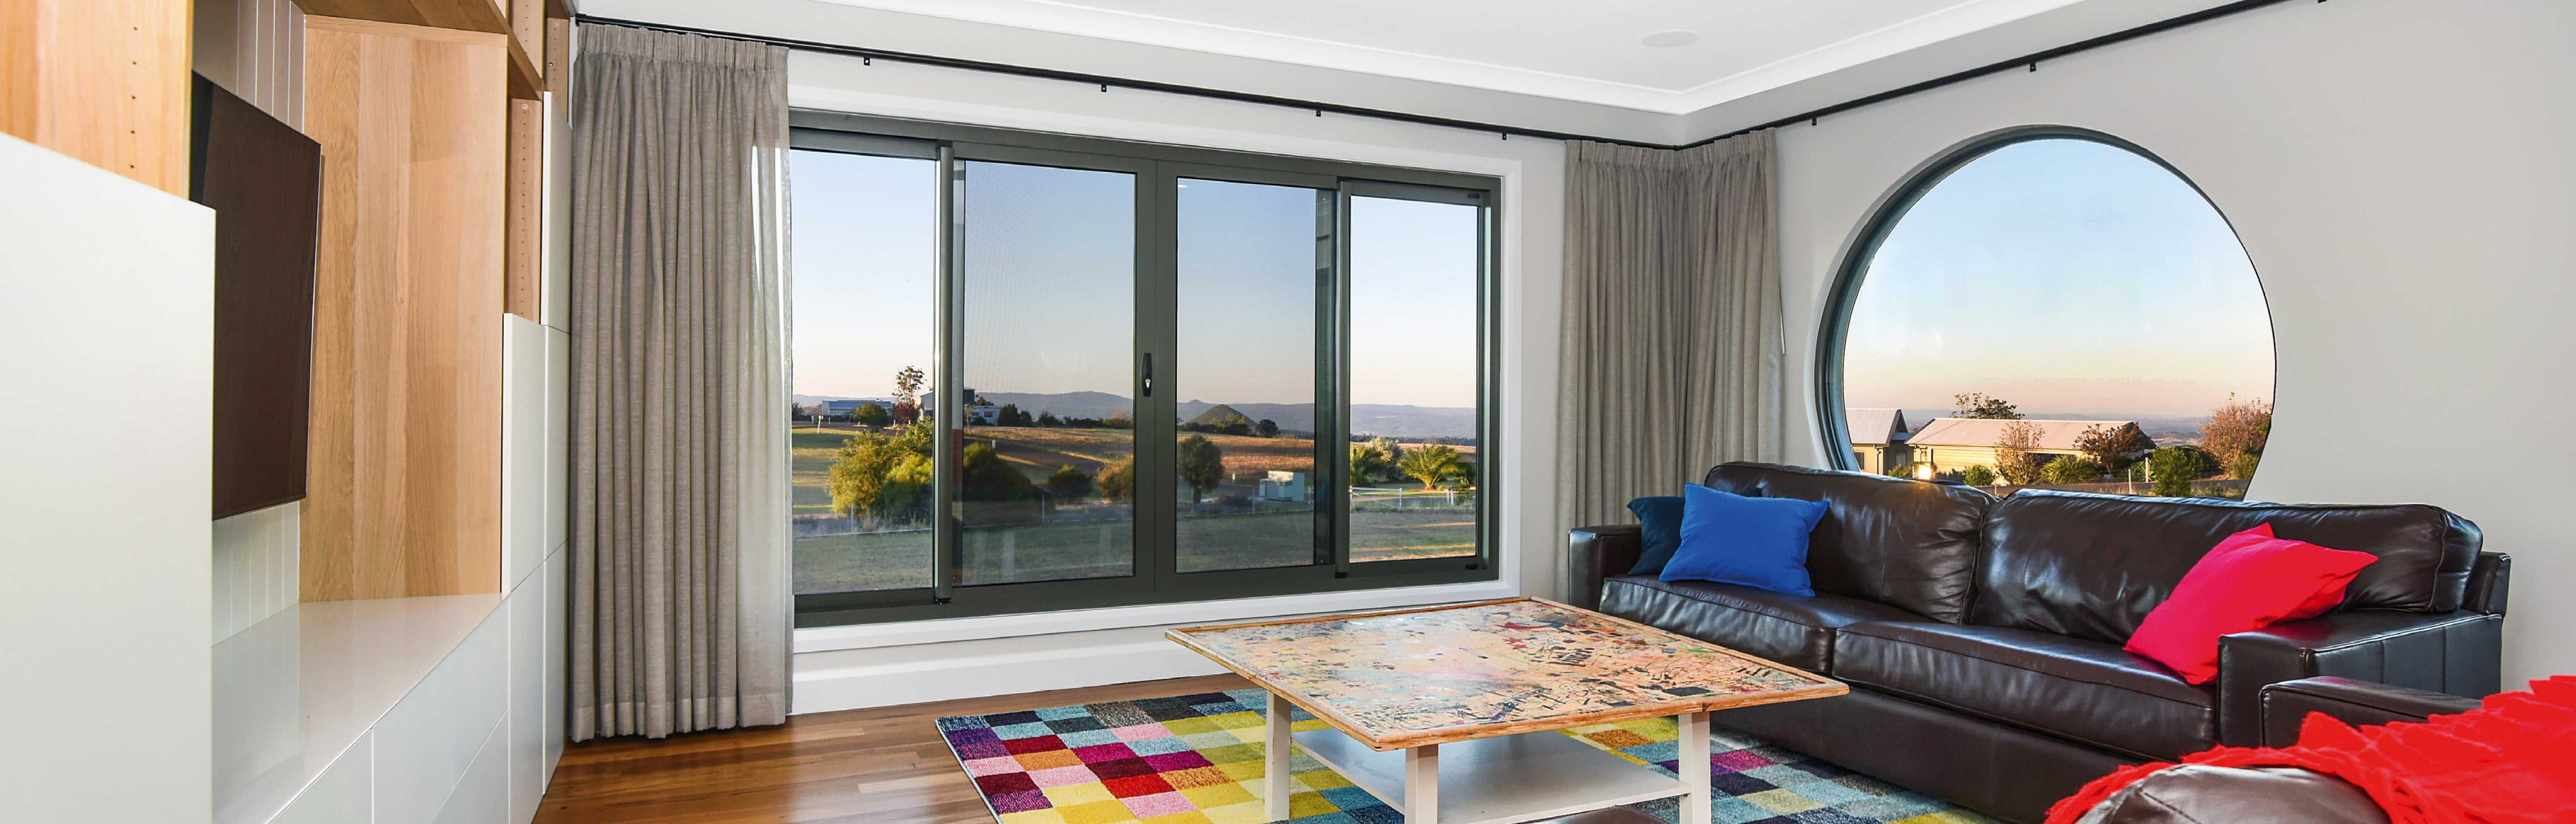 thermal break sliding windows